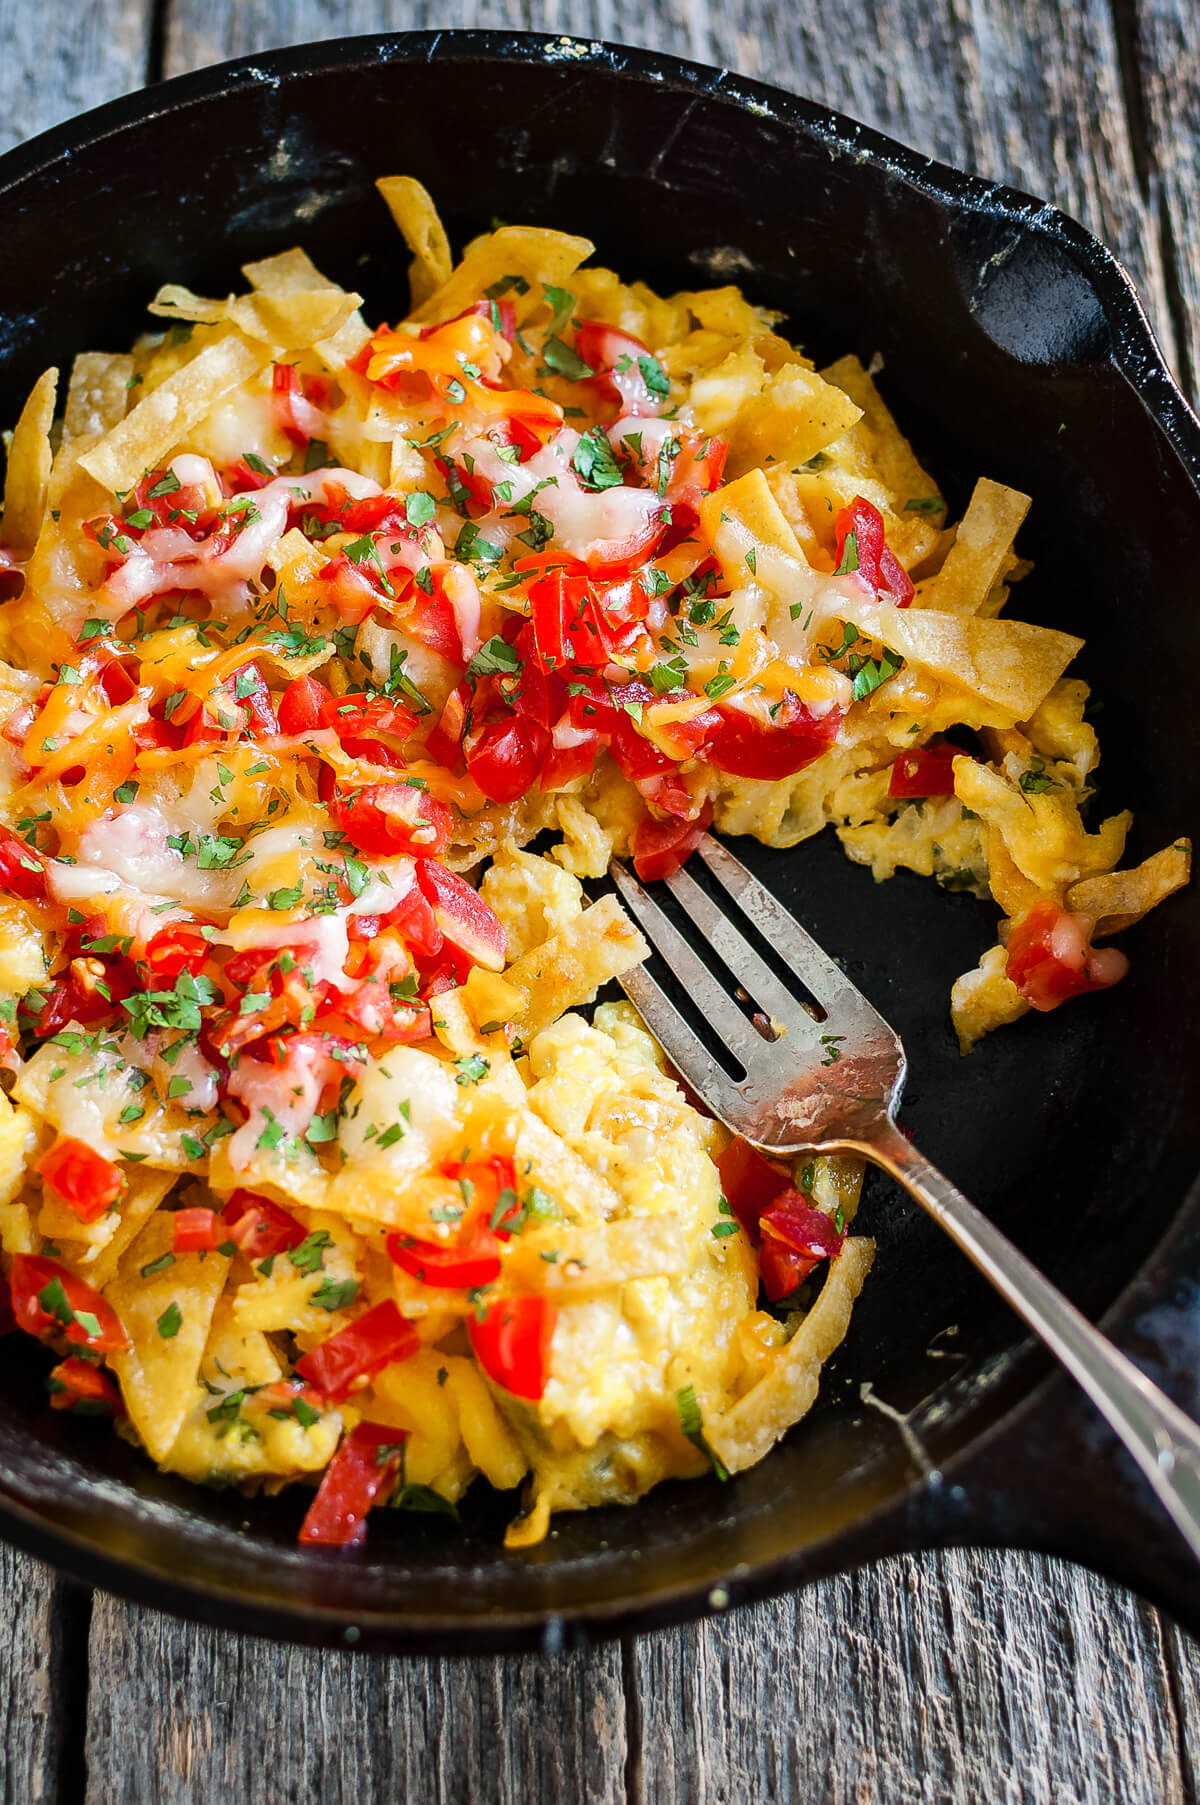 Overhead view of migas topped with chopped tomatoes and melted cheese in a cast iron skillet.